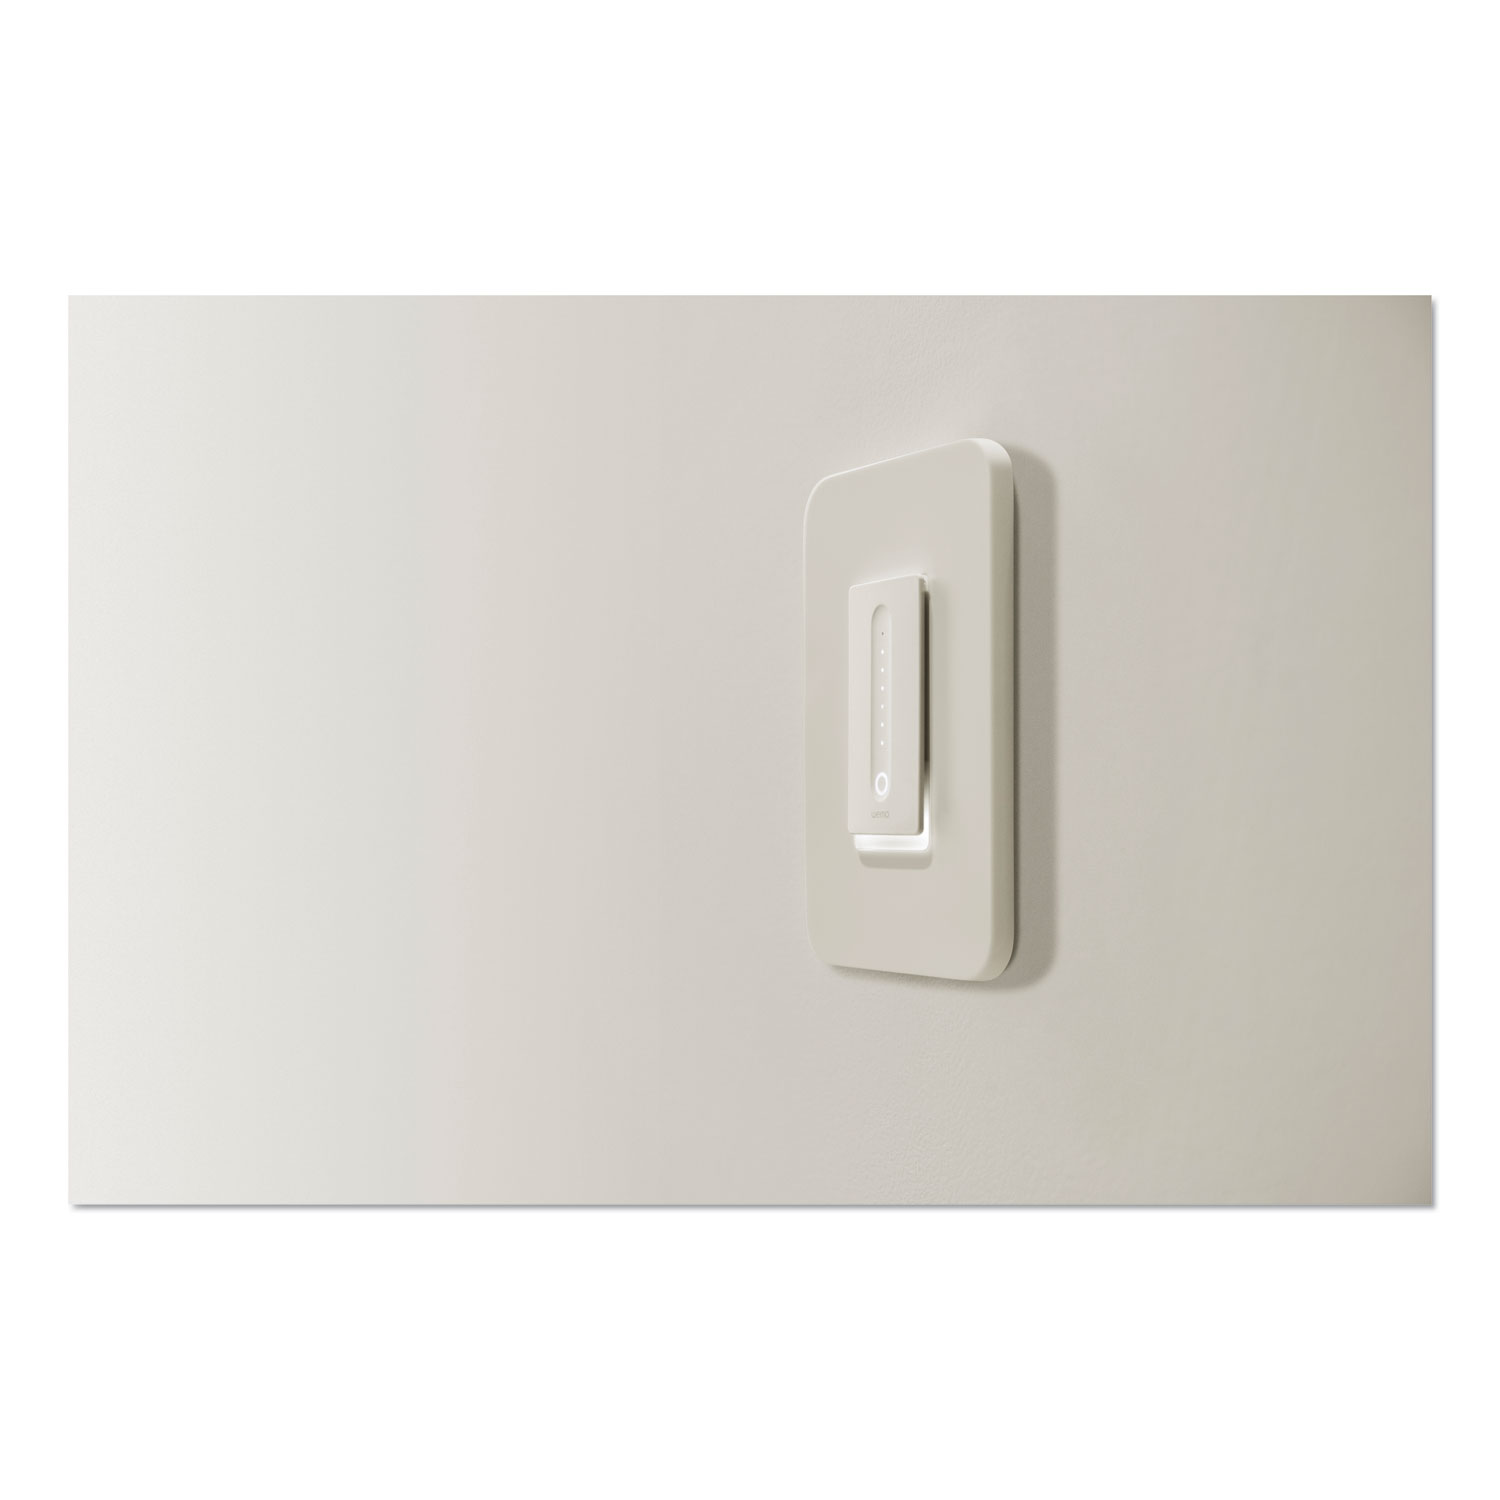 Dimmer Light Switch, 5.0″ X 3.3″ X 3.3″, 120 V